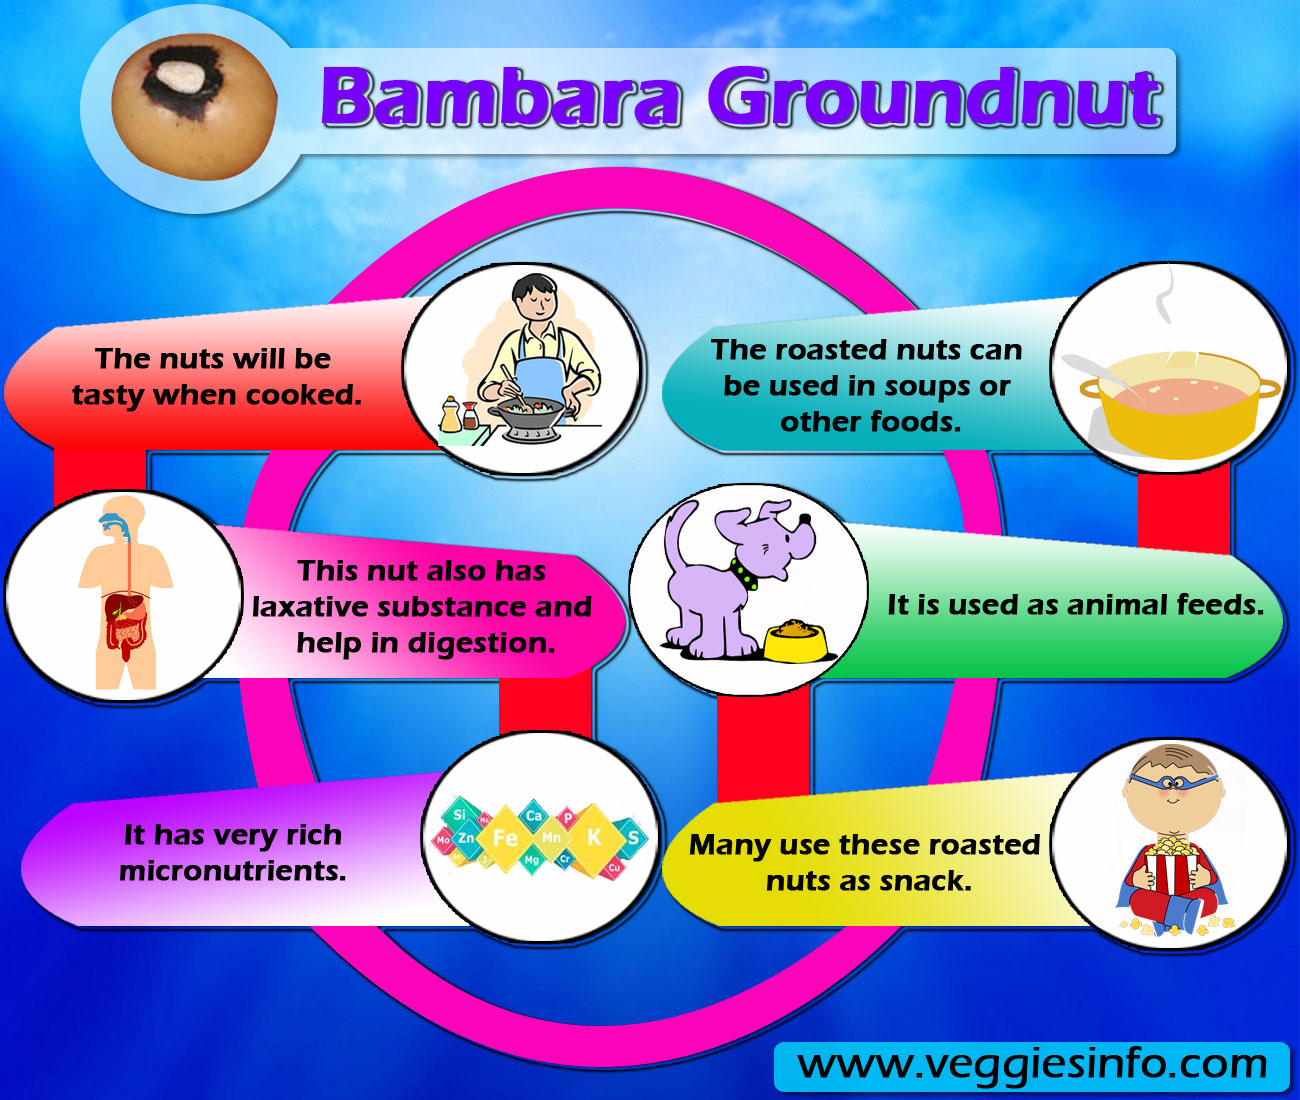 Bambara Groundnut Health Benefits And Its Uses